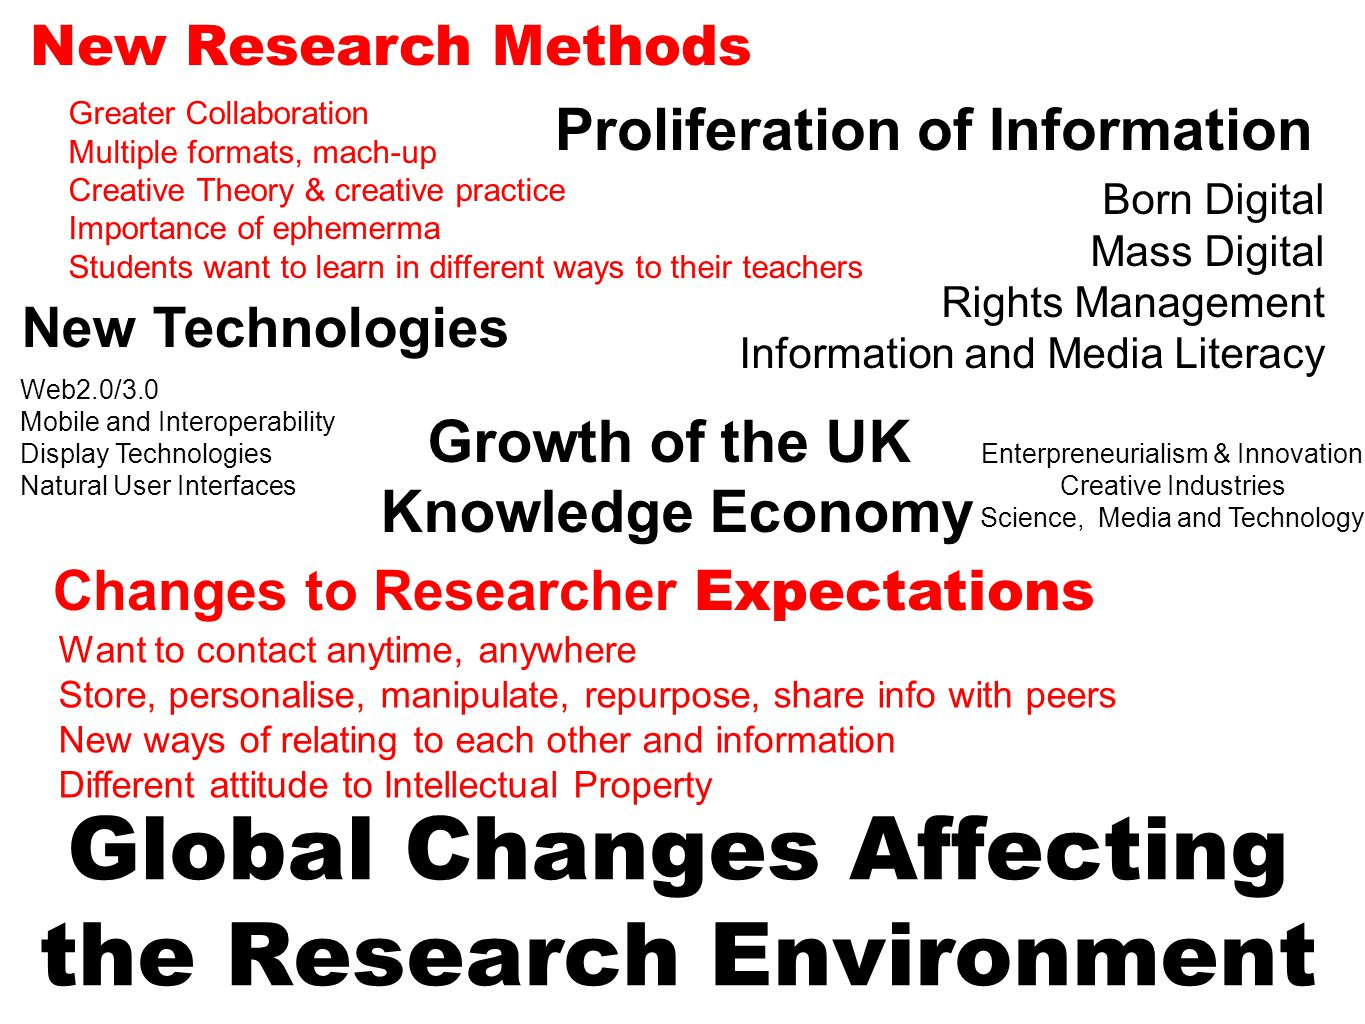 Global Changes Affecting the Research Environment Growth of the UK Knowledge Economy Enterpreneurialism & Innovation Creative Industries Science, Media and Technology New Technologies Web2.0/3.0 Mobile and Interoperability Display Technologies Natural User Interfaces Proliferation of Information Born Digital Mass Digital Rights Management Information and Media Literacy Changes to Researcher Expectations Want to contact anytime, anywhere Store, personalise, manipulate, repurpose, share info with peers New ways of relating to each other and information Different attitude to Intellectual Property New Research Methods Greater Collaboration Multiple formats, mach-up Creative Theory & creative practice Importance of ephemerma Students want to learn in different ways to their teachers